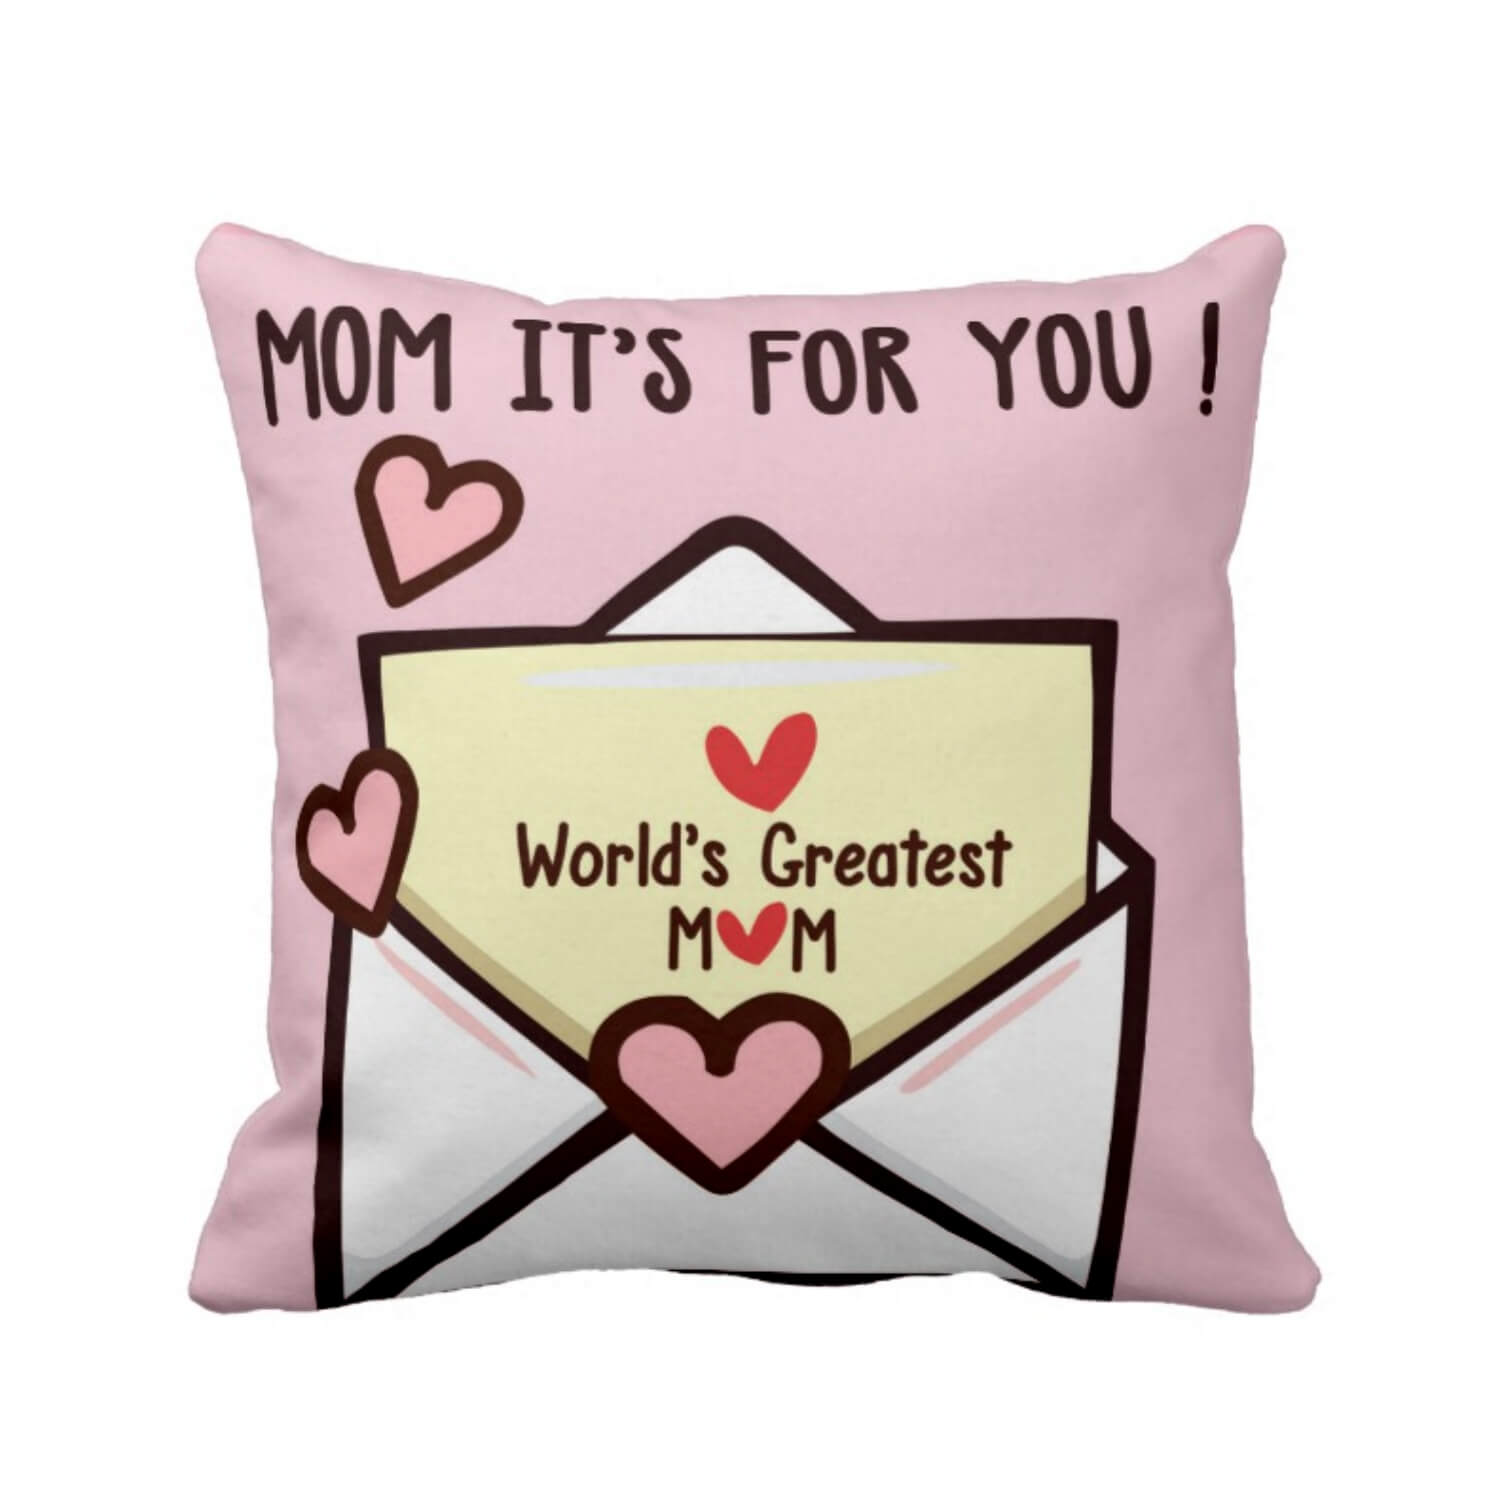 Worlds Greatest Mom Cushion Cover